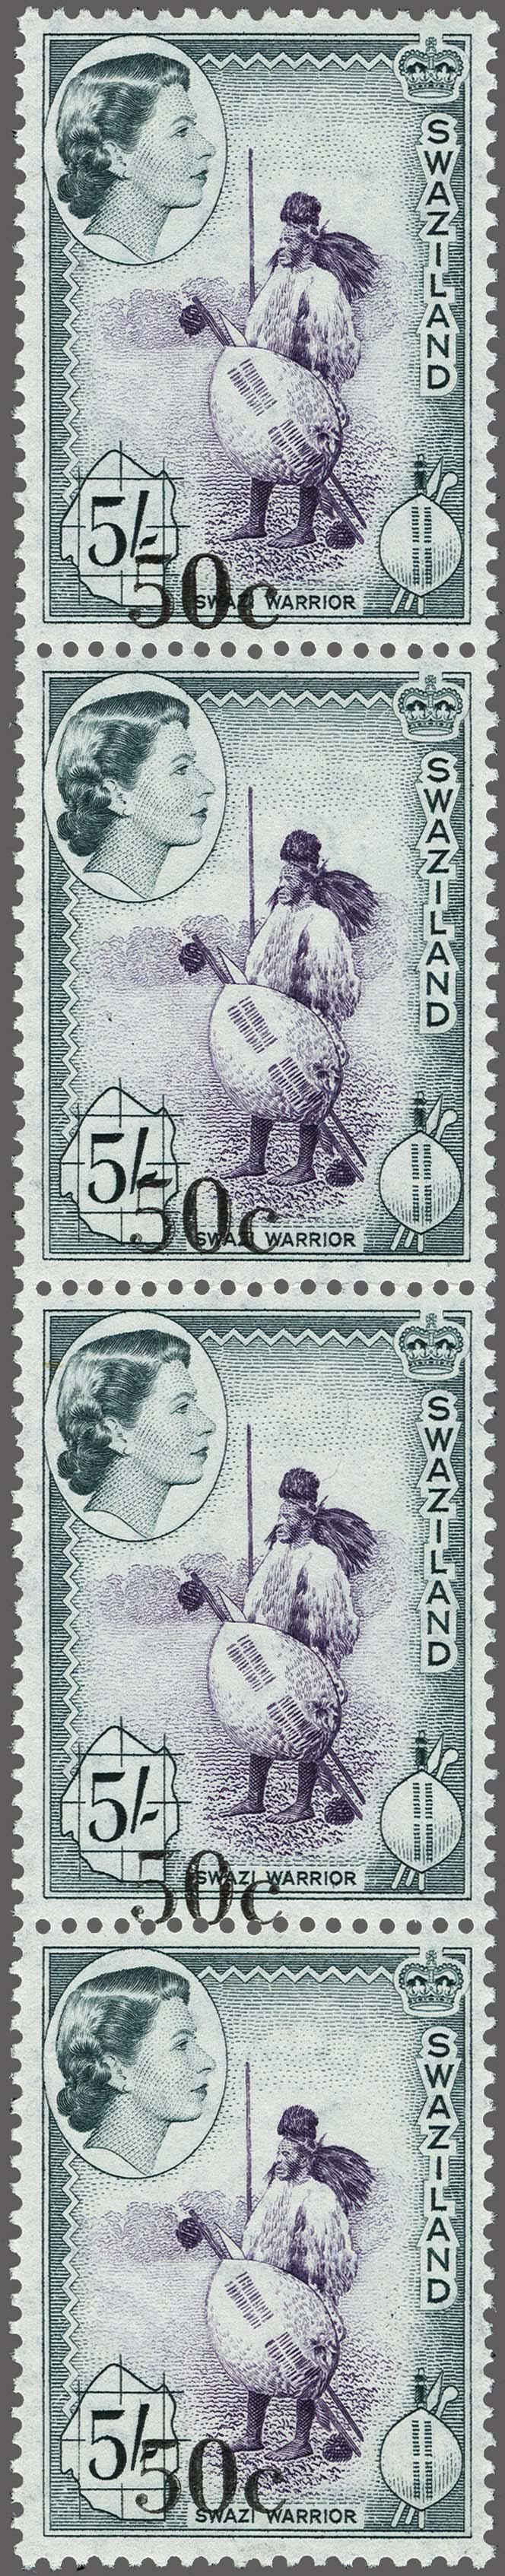 Lot 184 - Great Britain and former colonies swaziland -  Corinphila Veilingen Auction 250-253 - Day 1 - Foreign countries